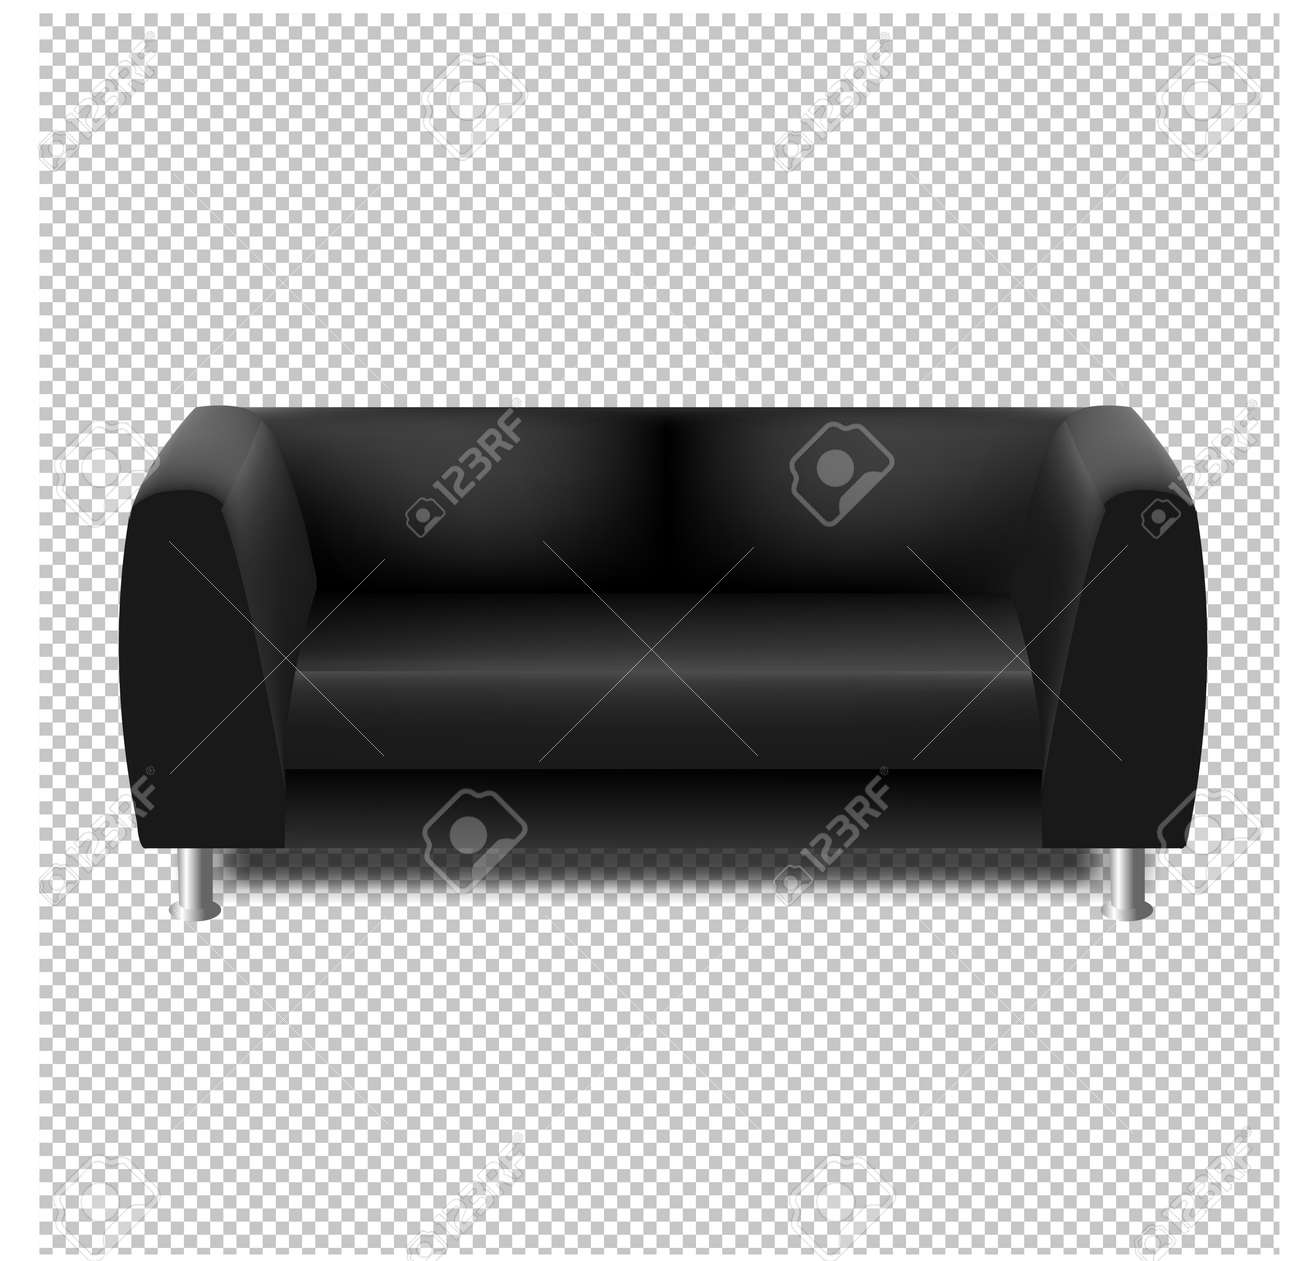 Groovy Black Sofa Isolated Transparent Background With Gradient Mesh Pabps2019 Chair Design Images Pabps2019Com